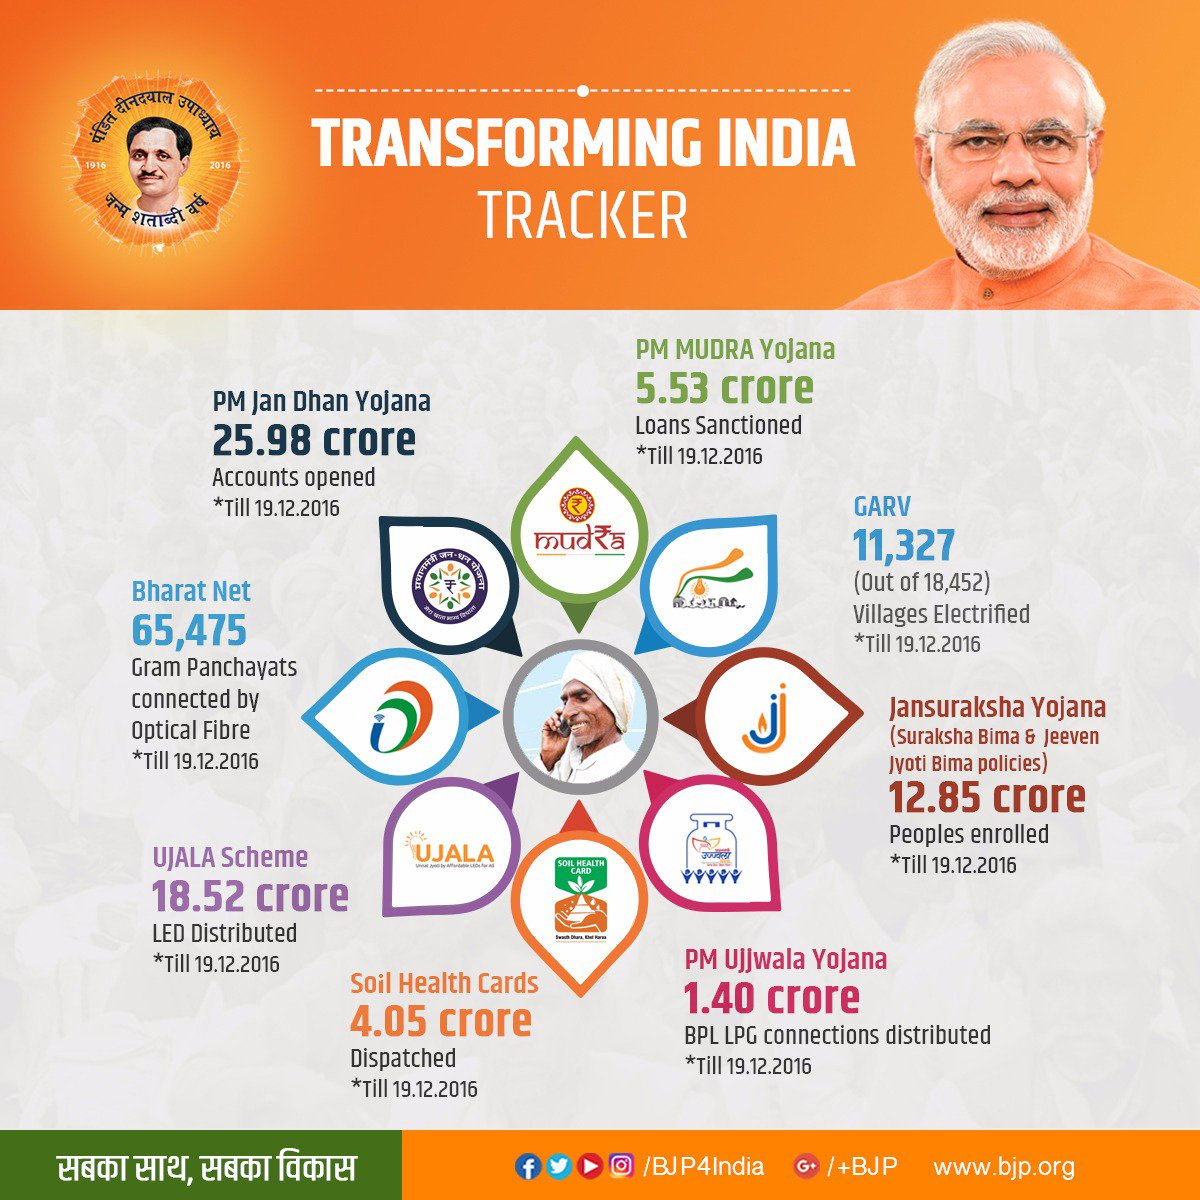 transforming india India is in the spotlight globally and domestically significant steps have been taken towards social and financial inclusion to ensure holistic development of all sections of the society the transforming india microsite is a repository for sharing the impact of various governance initiatives with citizens in real time.